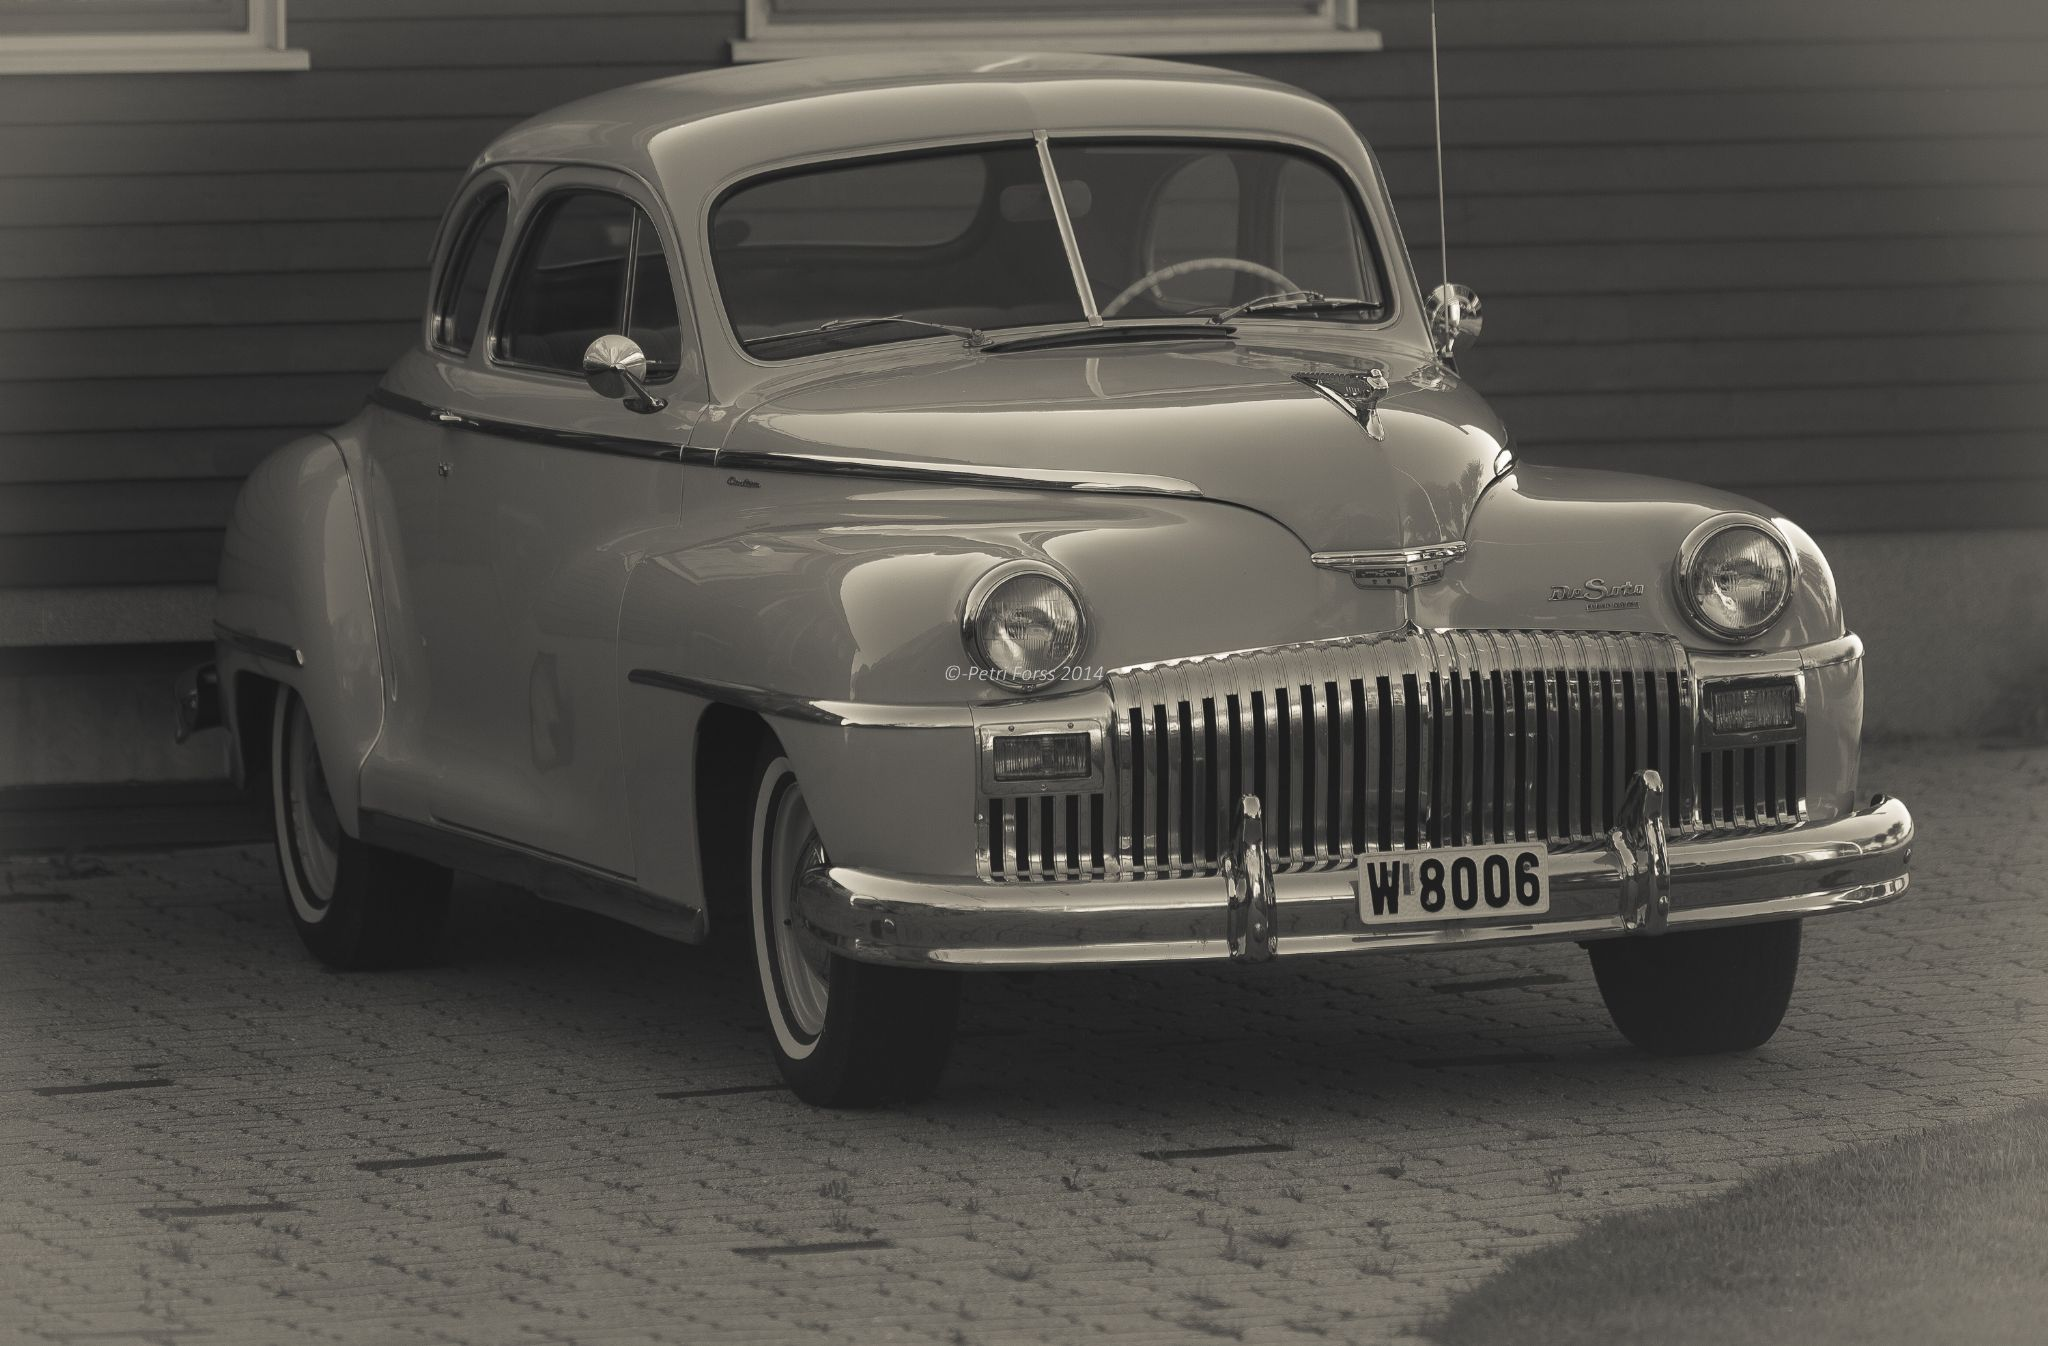 old Car by Petri Forss